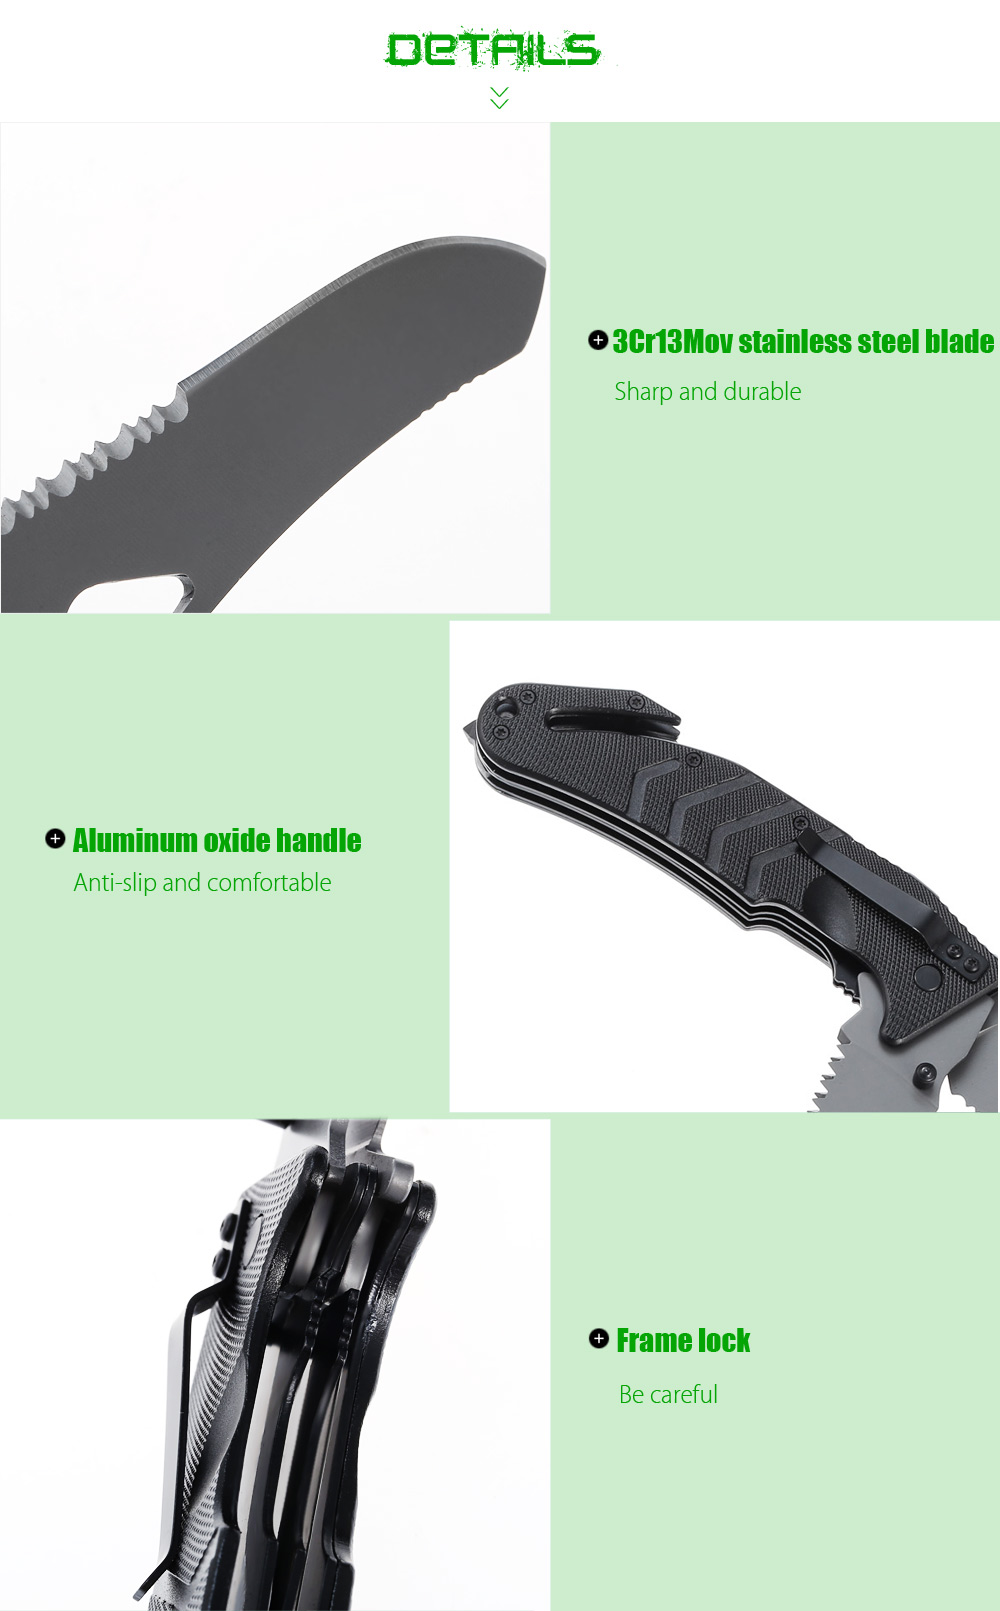 3Cr13Mov Stainless Steel Multi-use Folding Knife / Saw with Rope Cutter